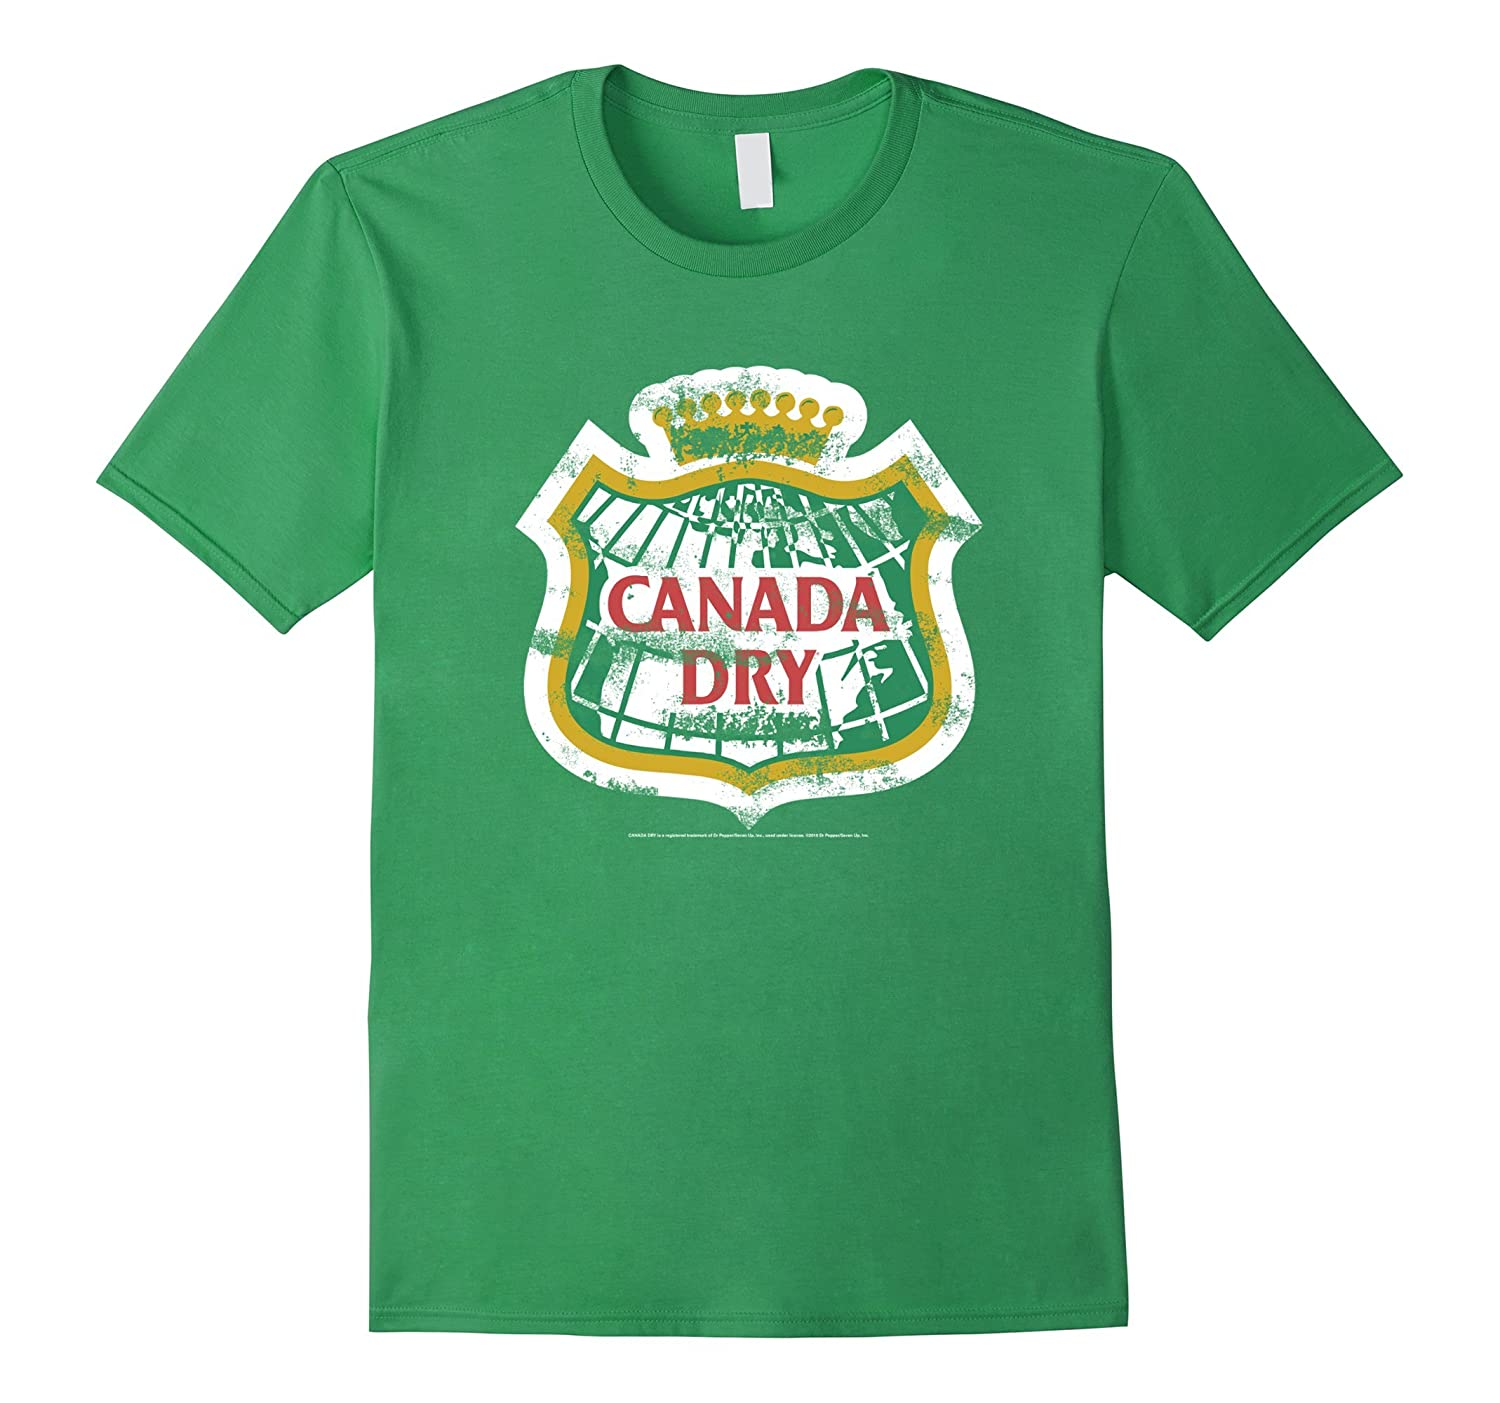 Canada Dry T-Shirt | Classic Look style #25289-FL